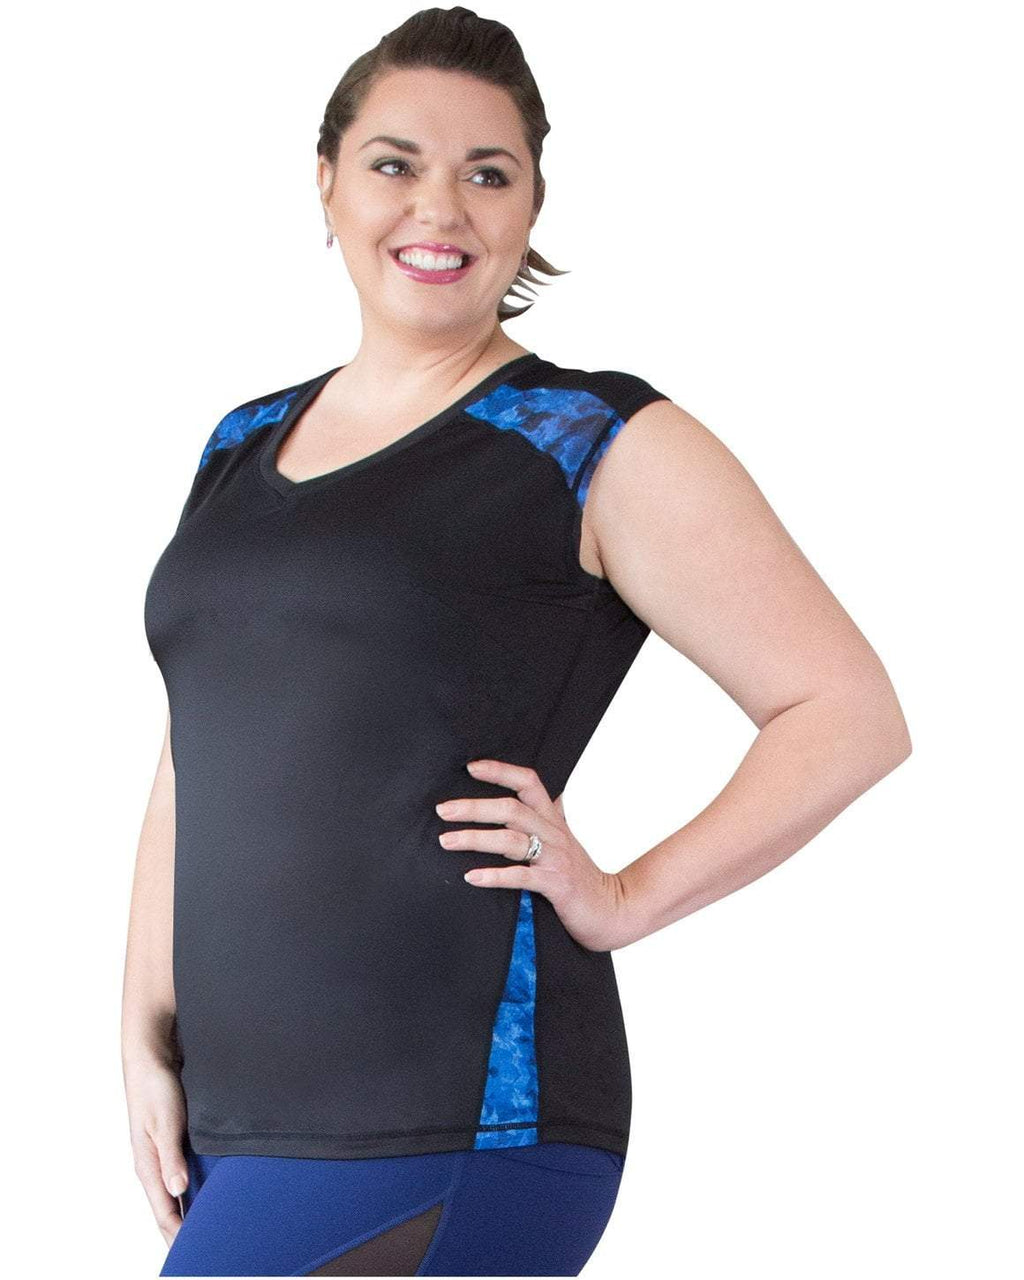 Verve Sleeveless Top - Be Activewear